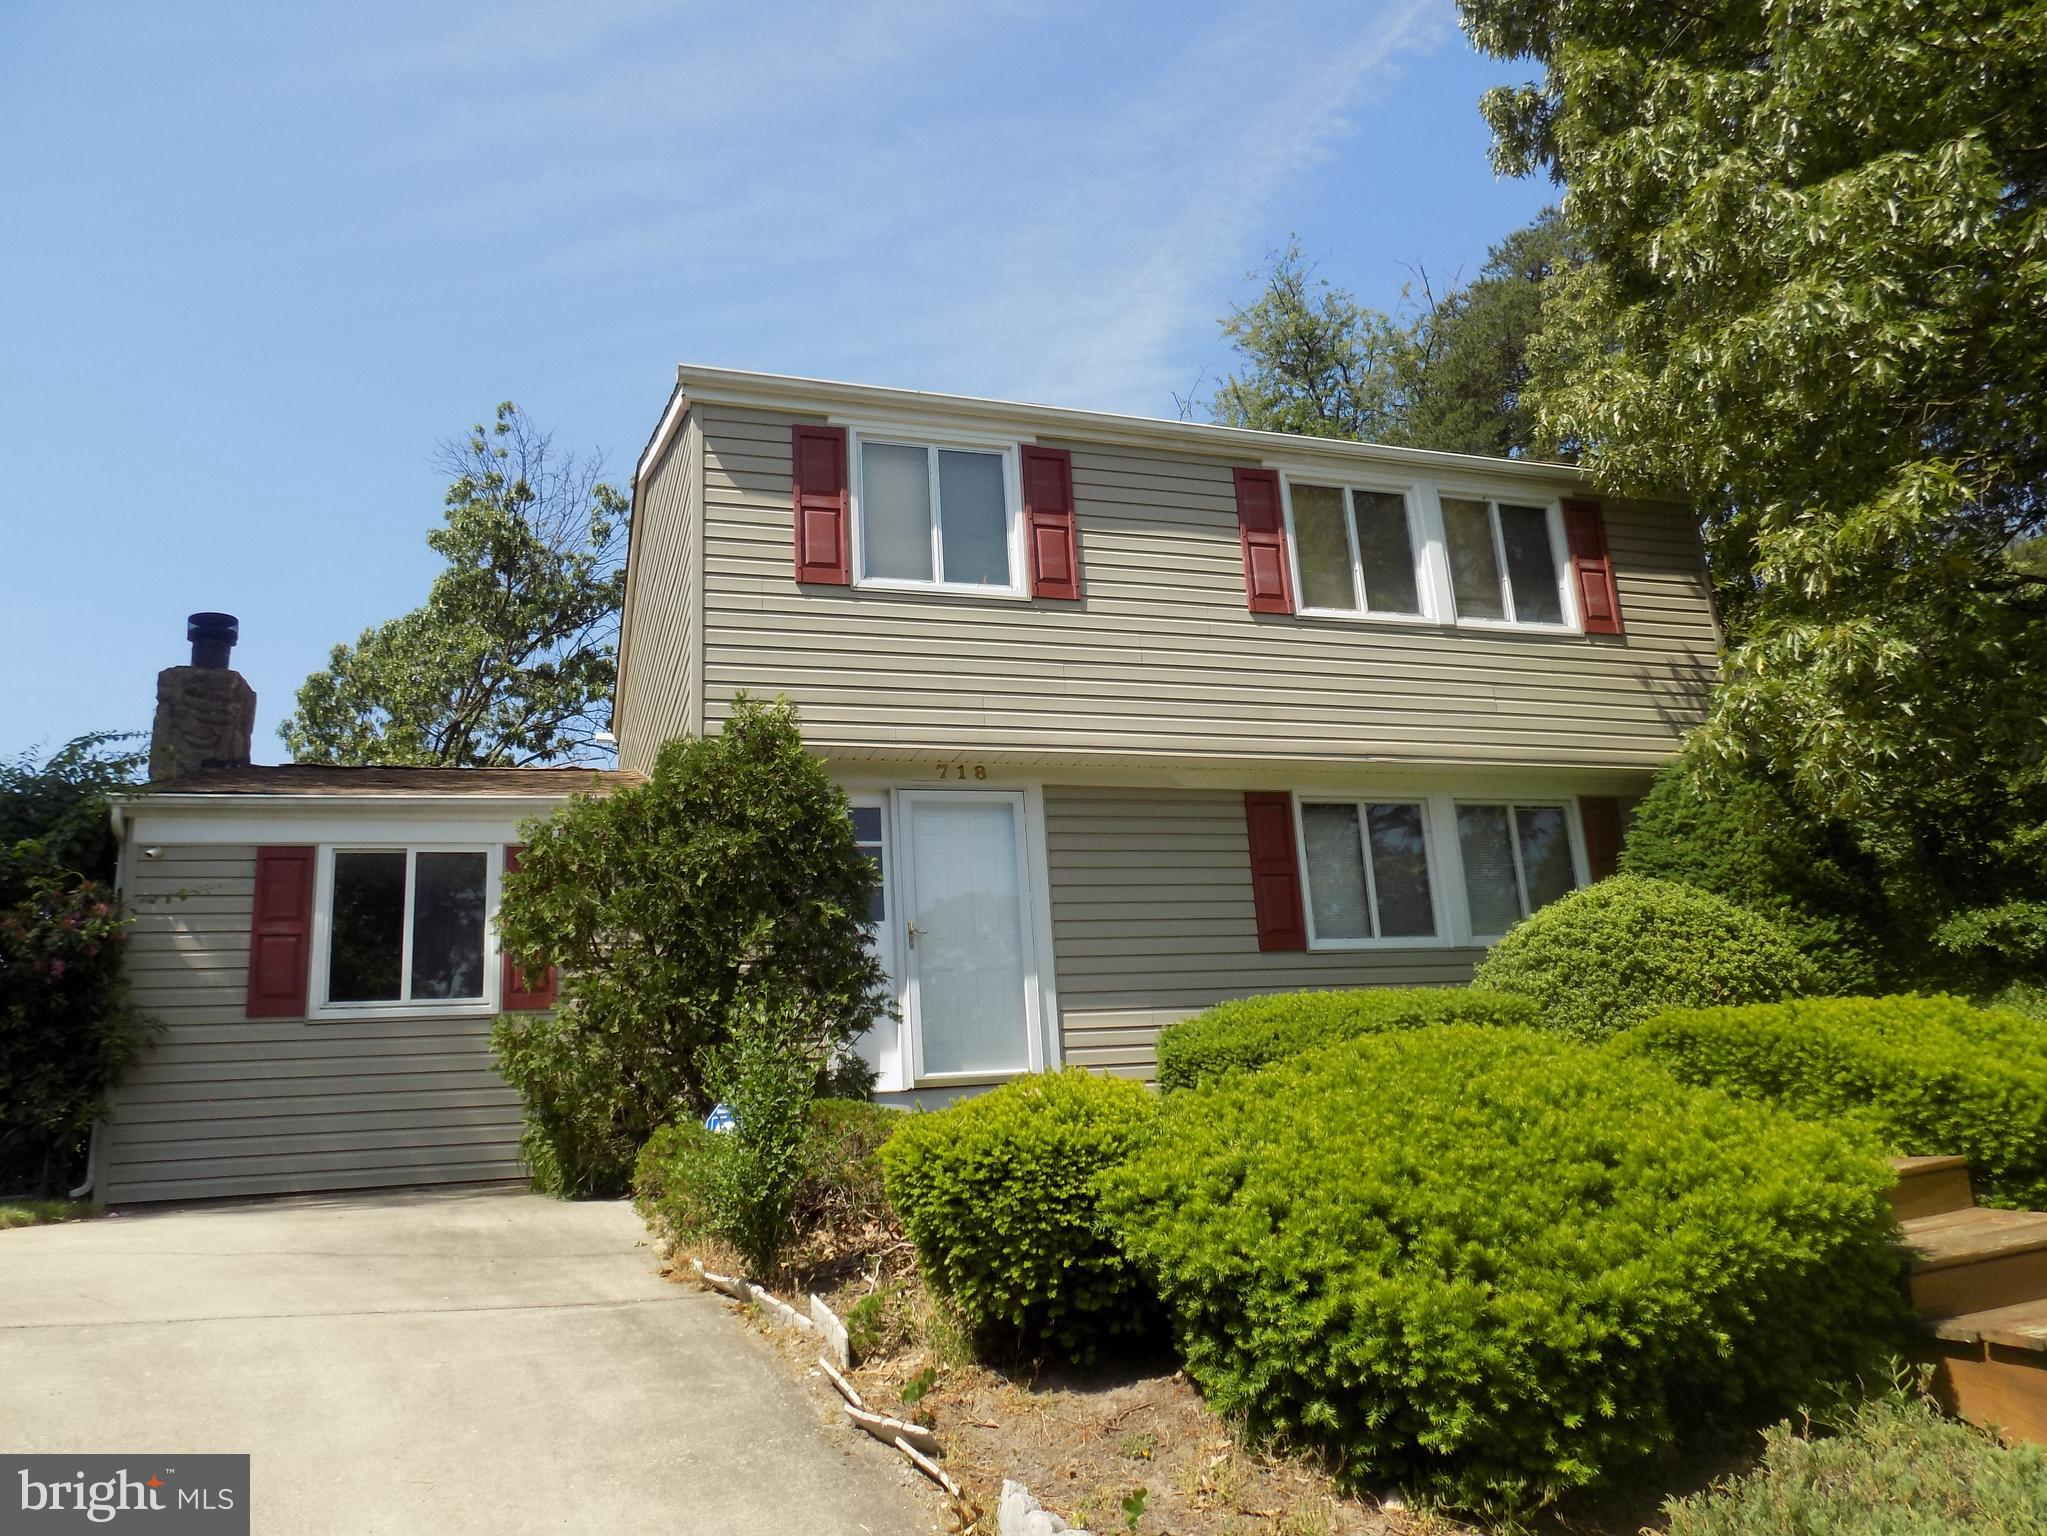 This 2 story home awaits new owner. Conveniently located on a cul-de-sac, this spacious home boast a